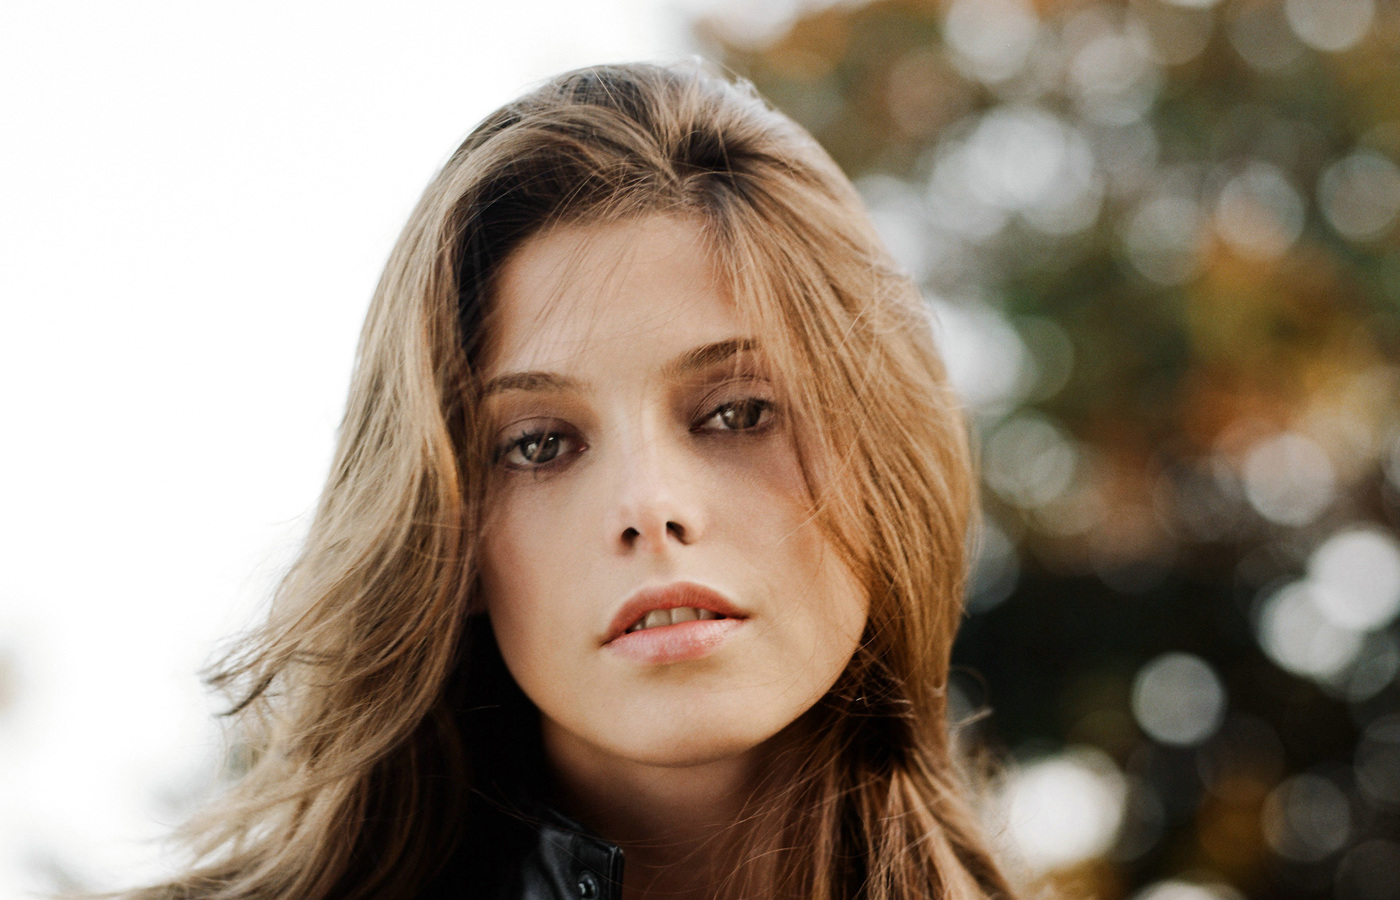 ashley-greene-cute-look-4k-j1.jpg